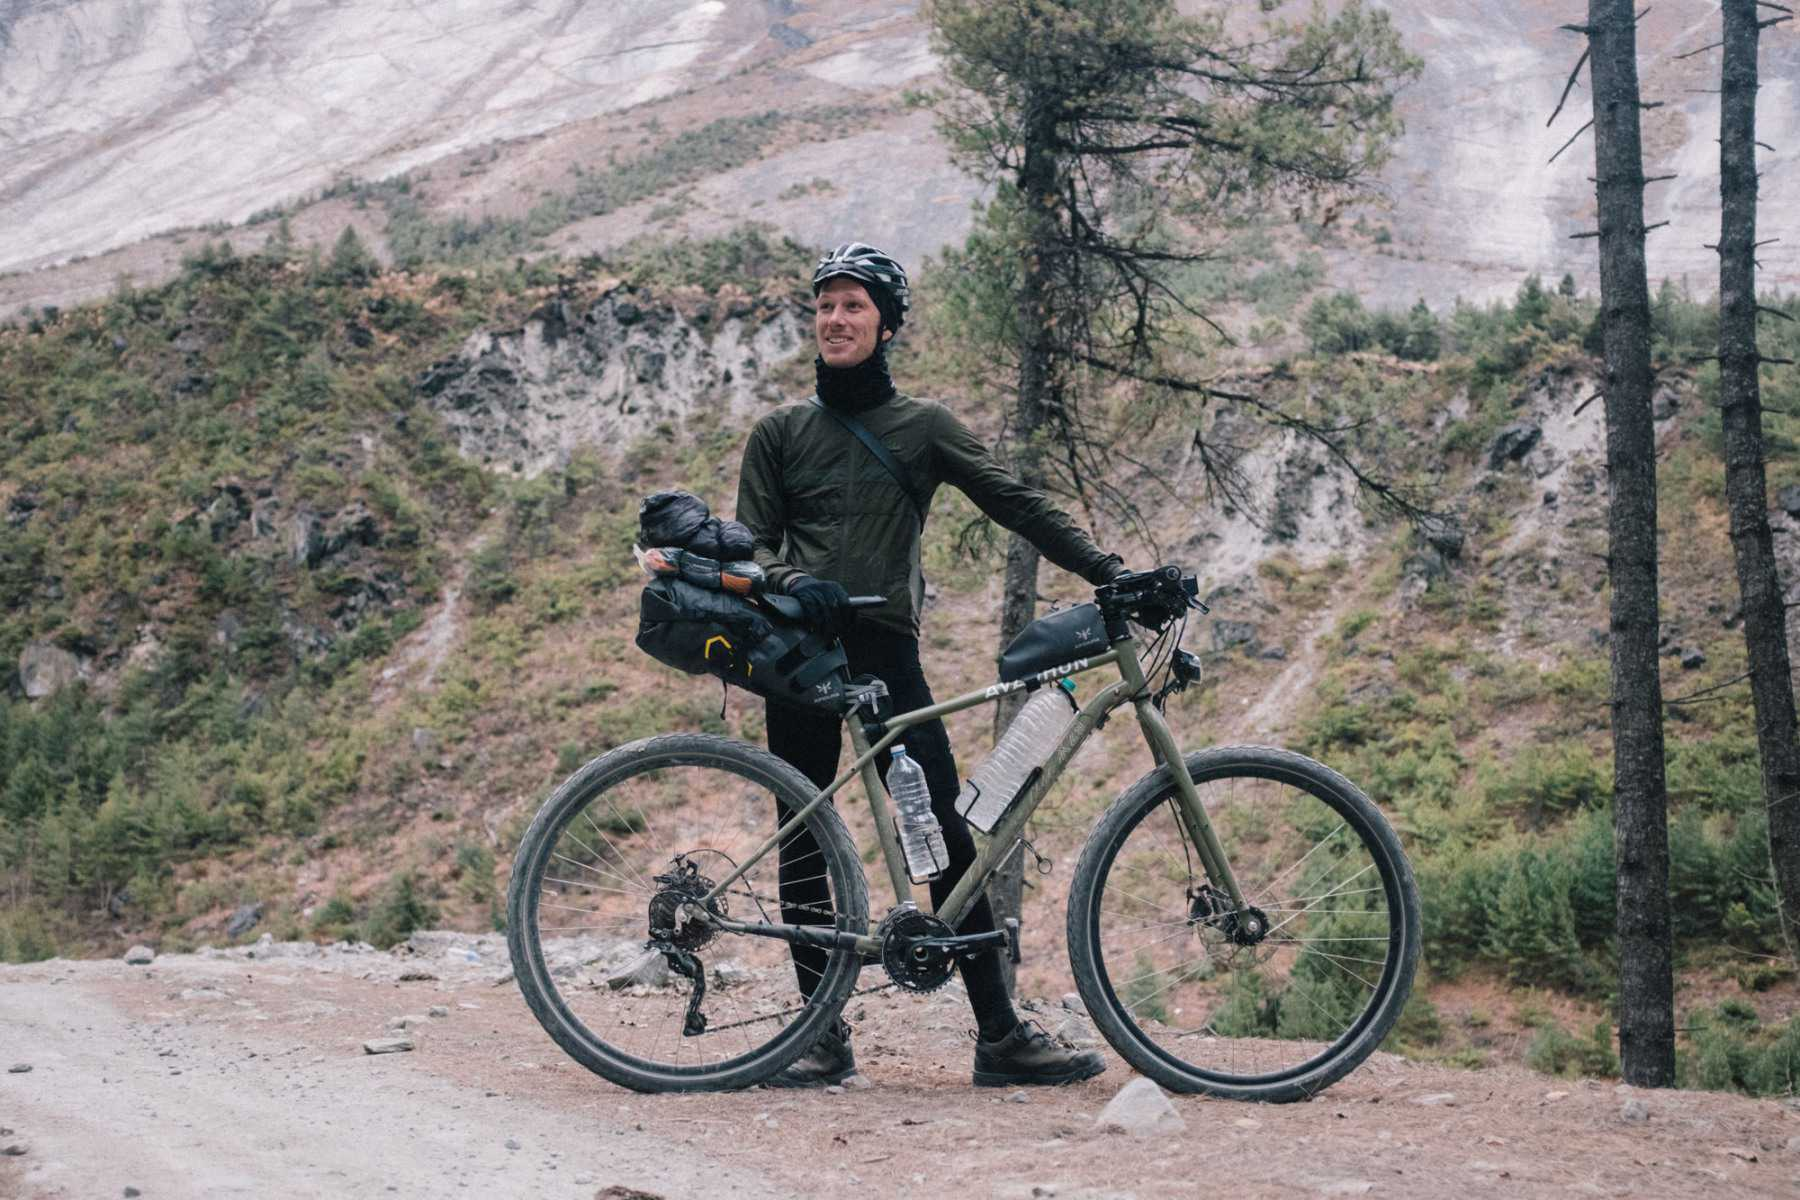 Robin with his Avaghon X29 Apidura saddle pack expedition series